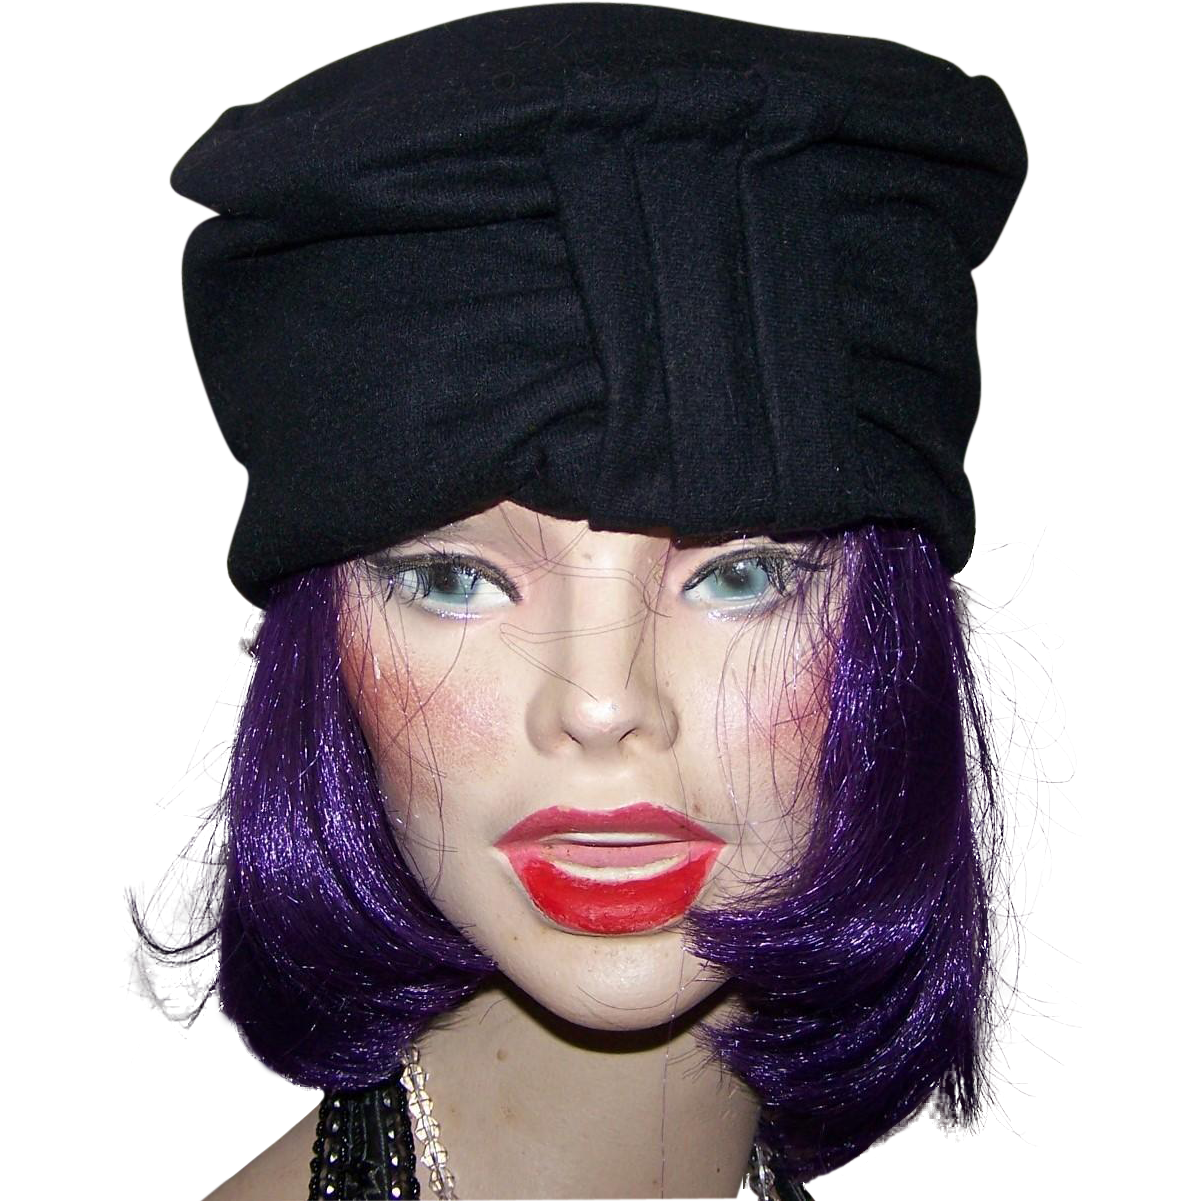 Vintage Ladies Fashion Stylish Felt Turban Millinery Fashion Hat By Sears